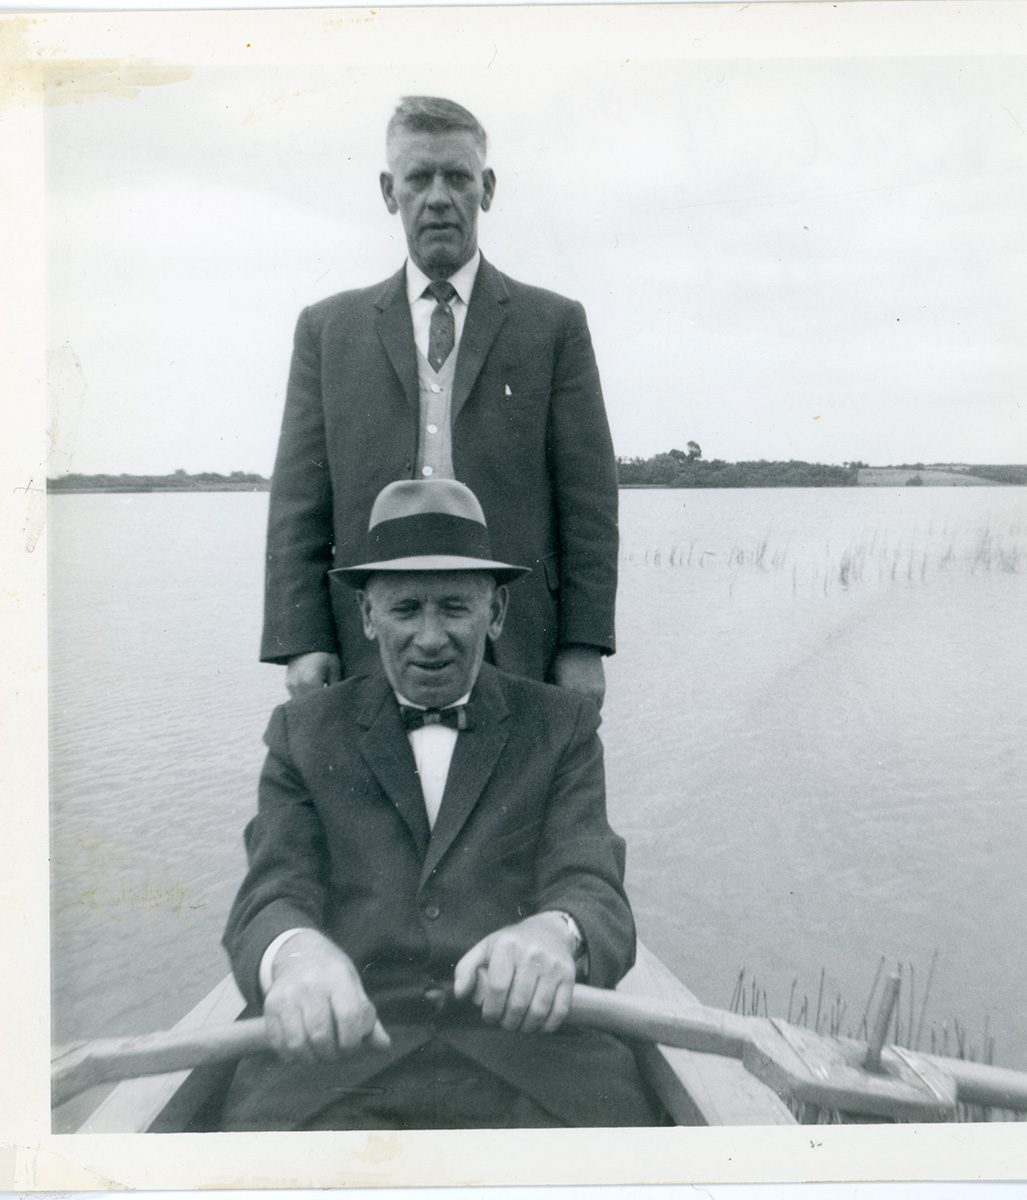 McNally // Boston & Lurgan :: Daniel Hendron with his brother Bill Hendron, Lough Neagh, N.Ireland, October, 1963